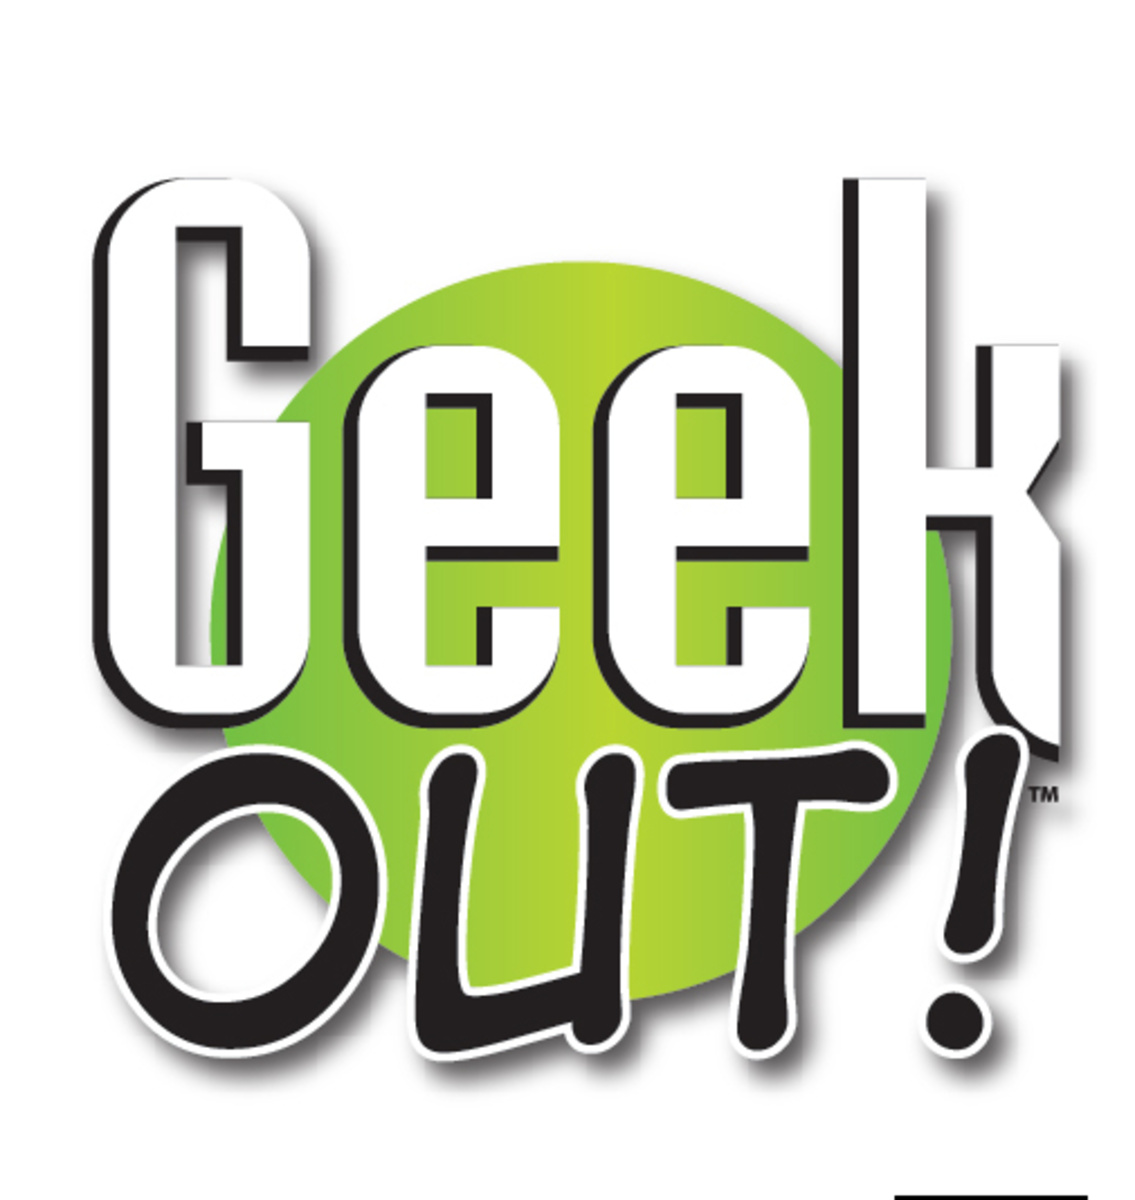 The logo for the trivia game Geek Out!